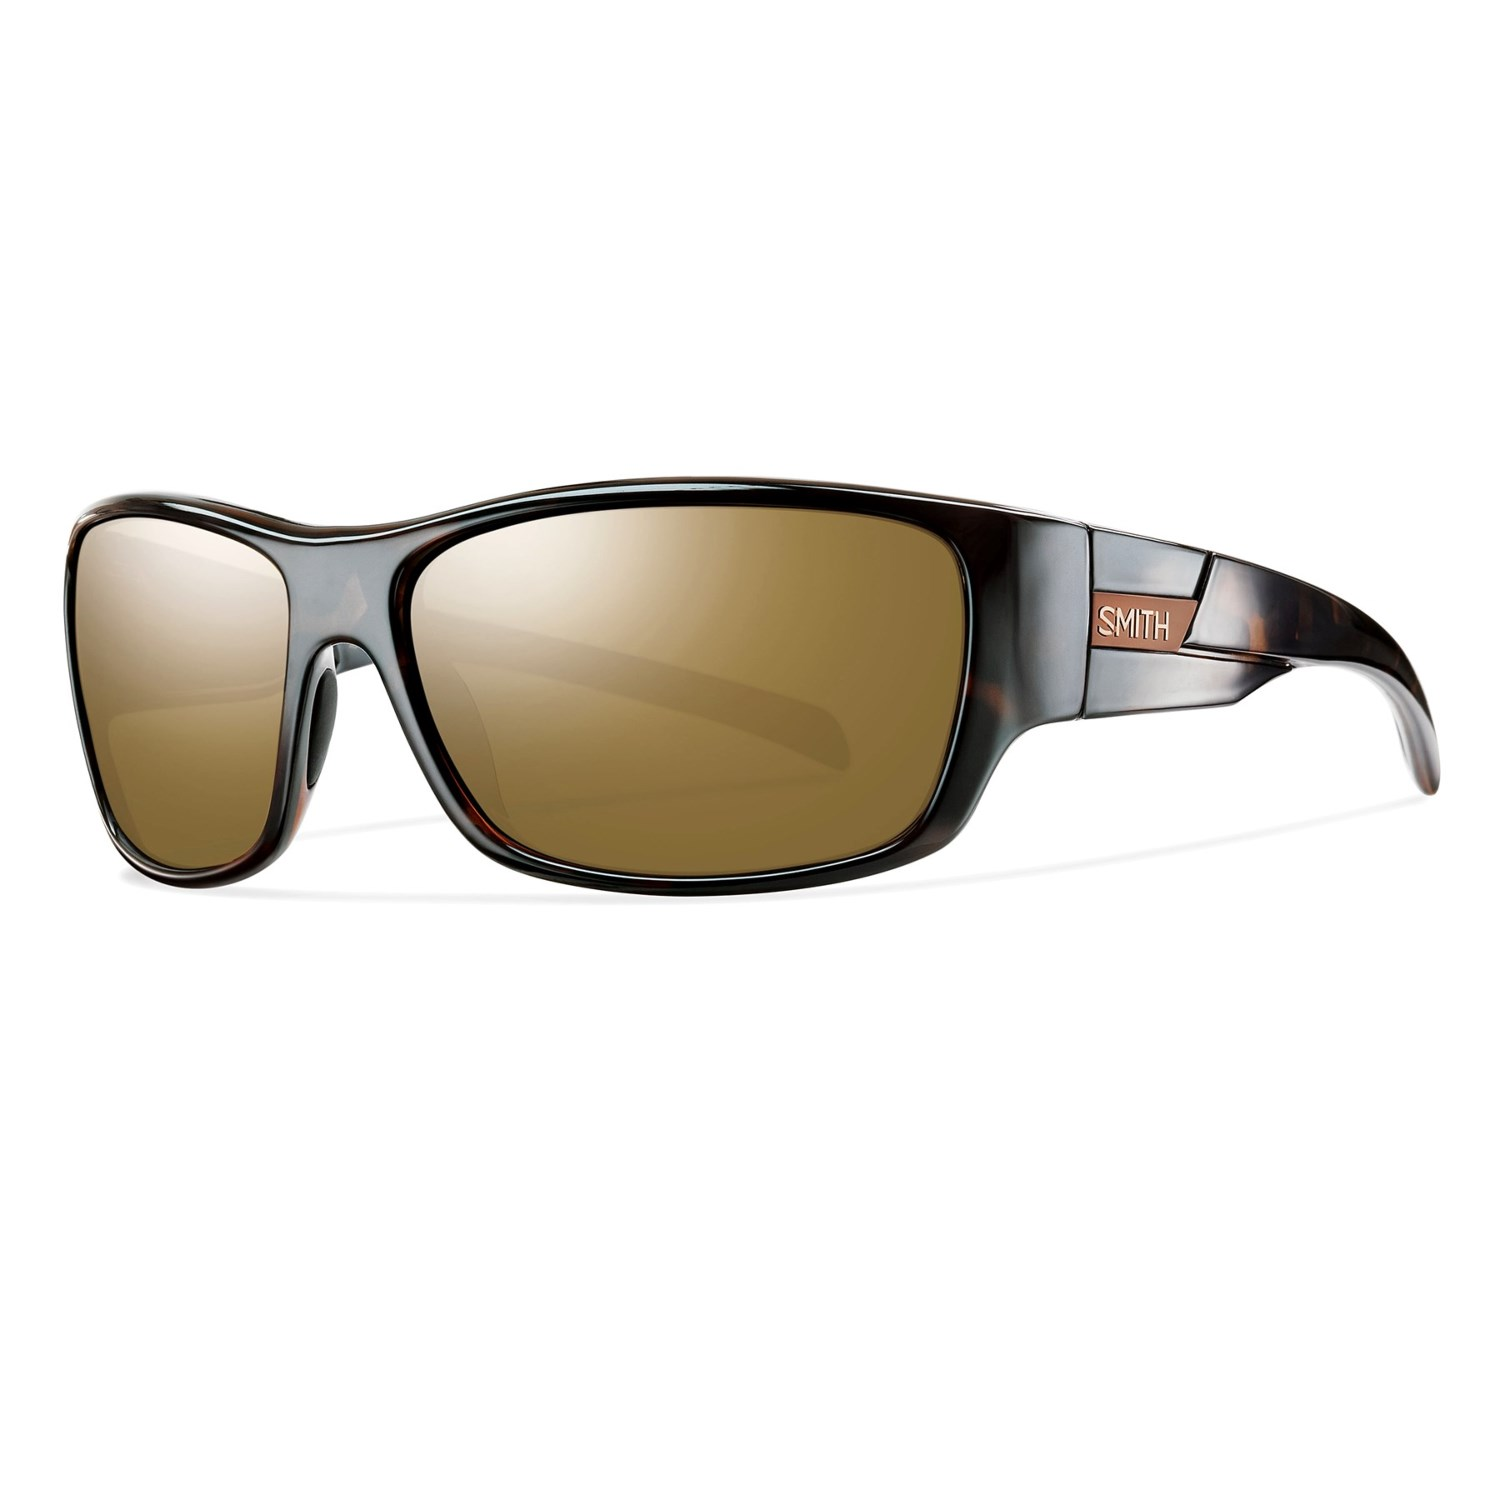 Smith Goggles Replacement Lenses : Smith sequel sunglasses replacement lenses louisiana